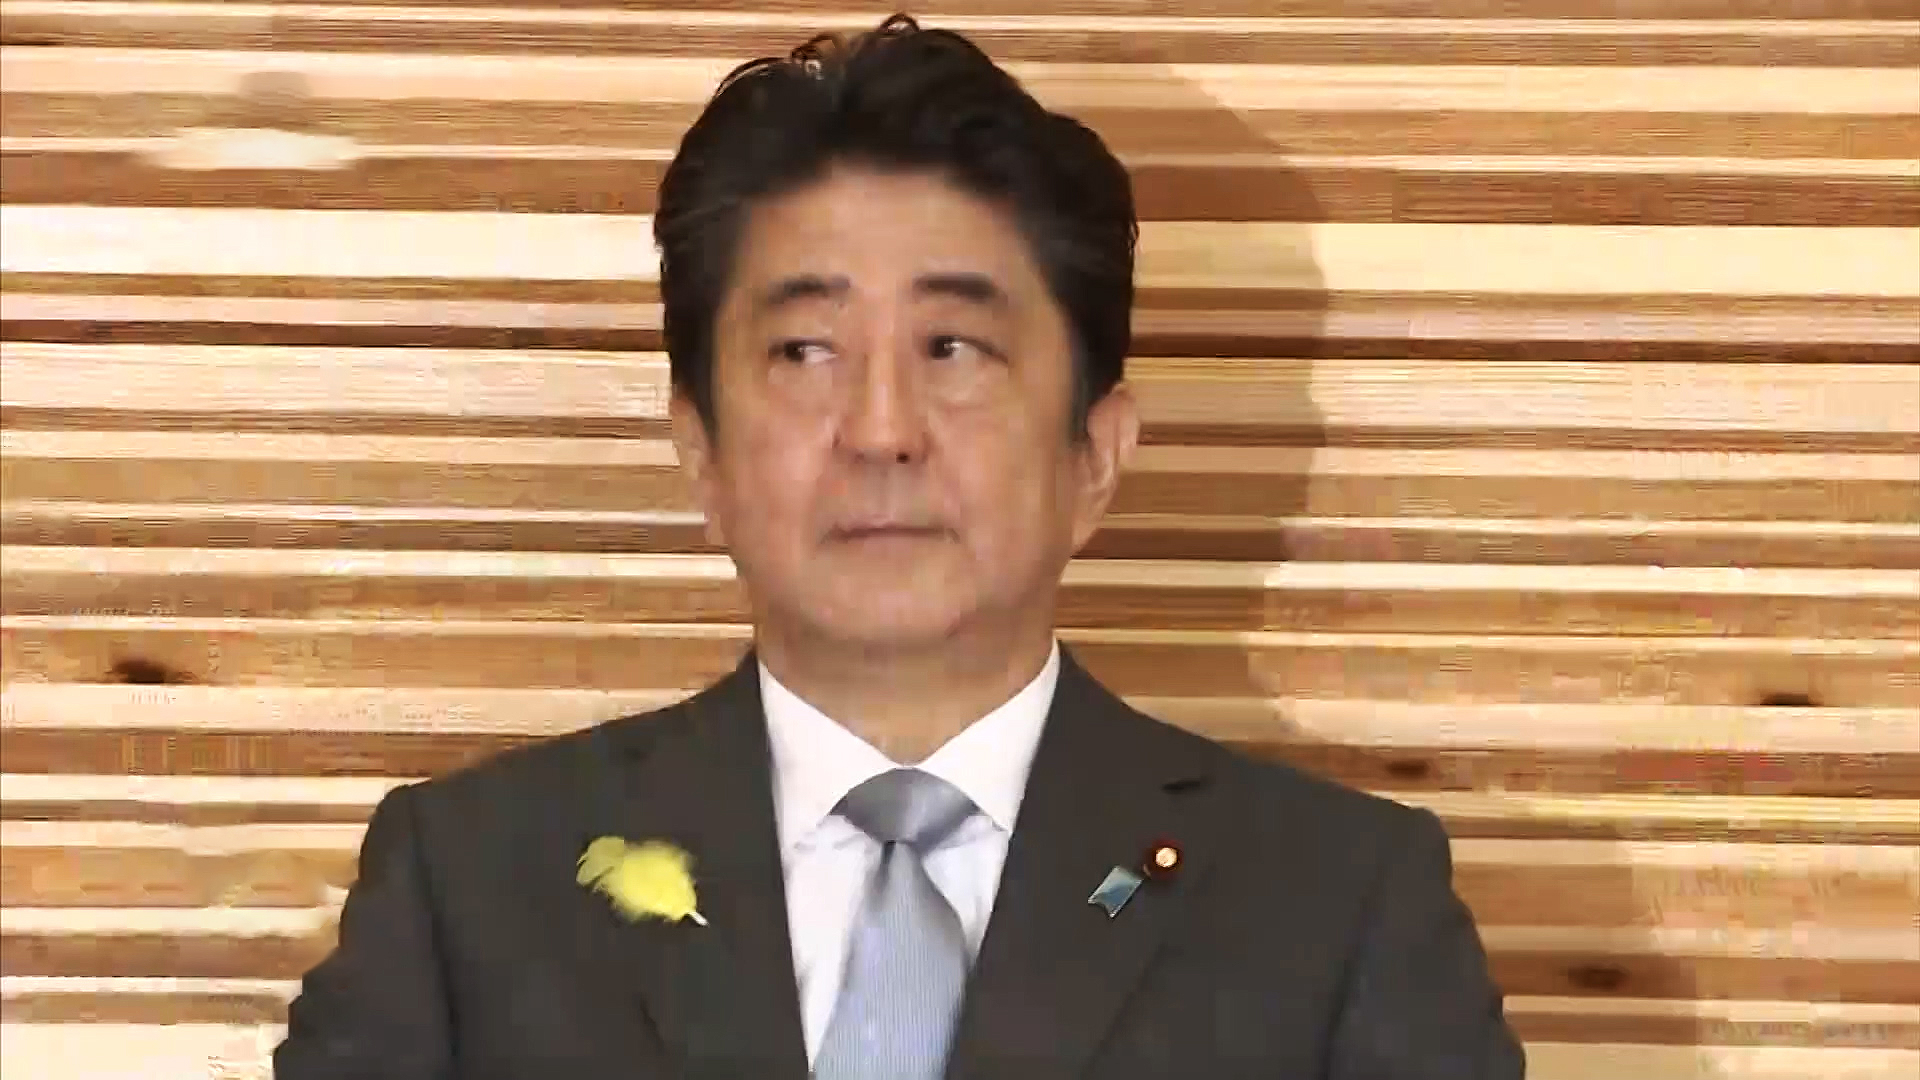 Ep.107 Japanese PM Shinzo Abe resigns, is this a turning point for the Seoul-Tokyo ties?